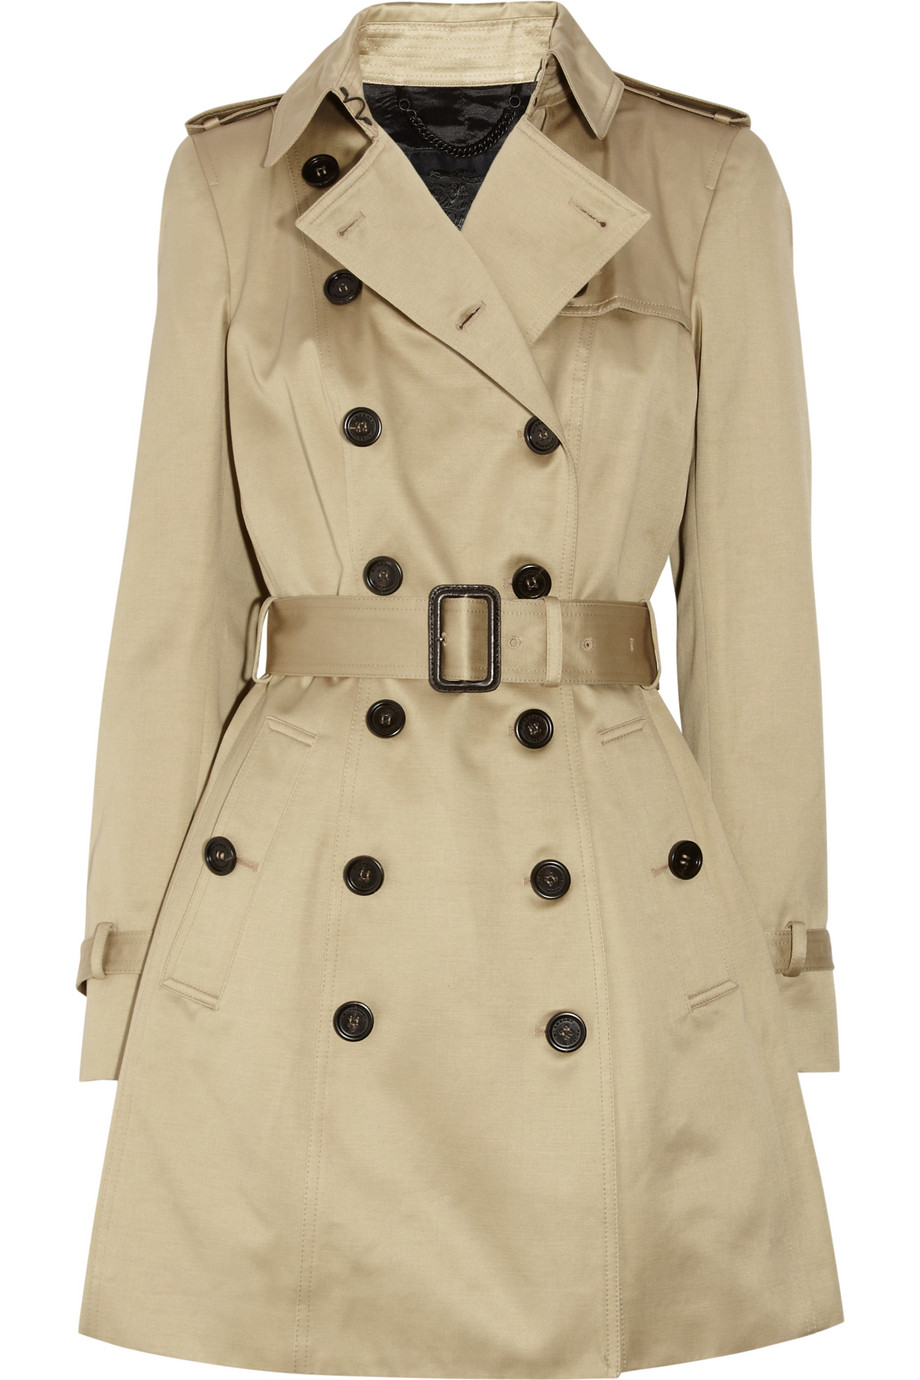 burberry prorsum cotton sateen trench coat in beige trench lyst. Black Bedroom Furniture Sets. Home Design Ideas